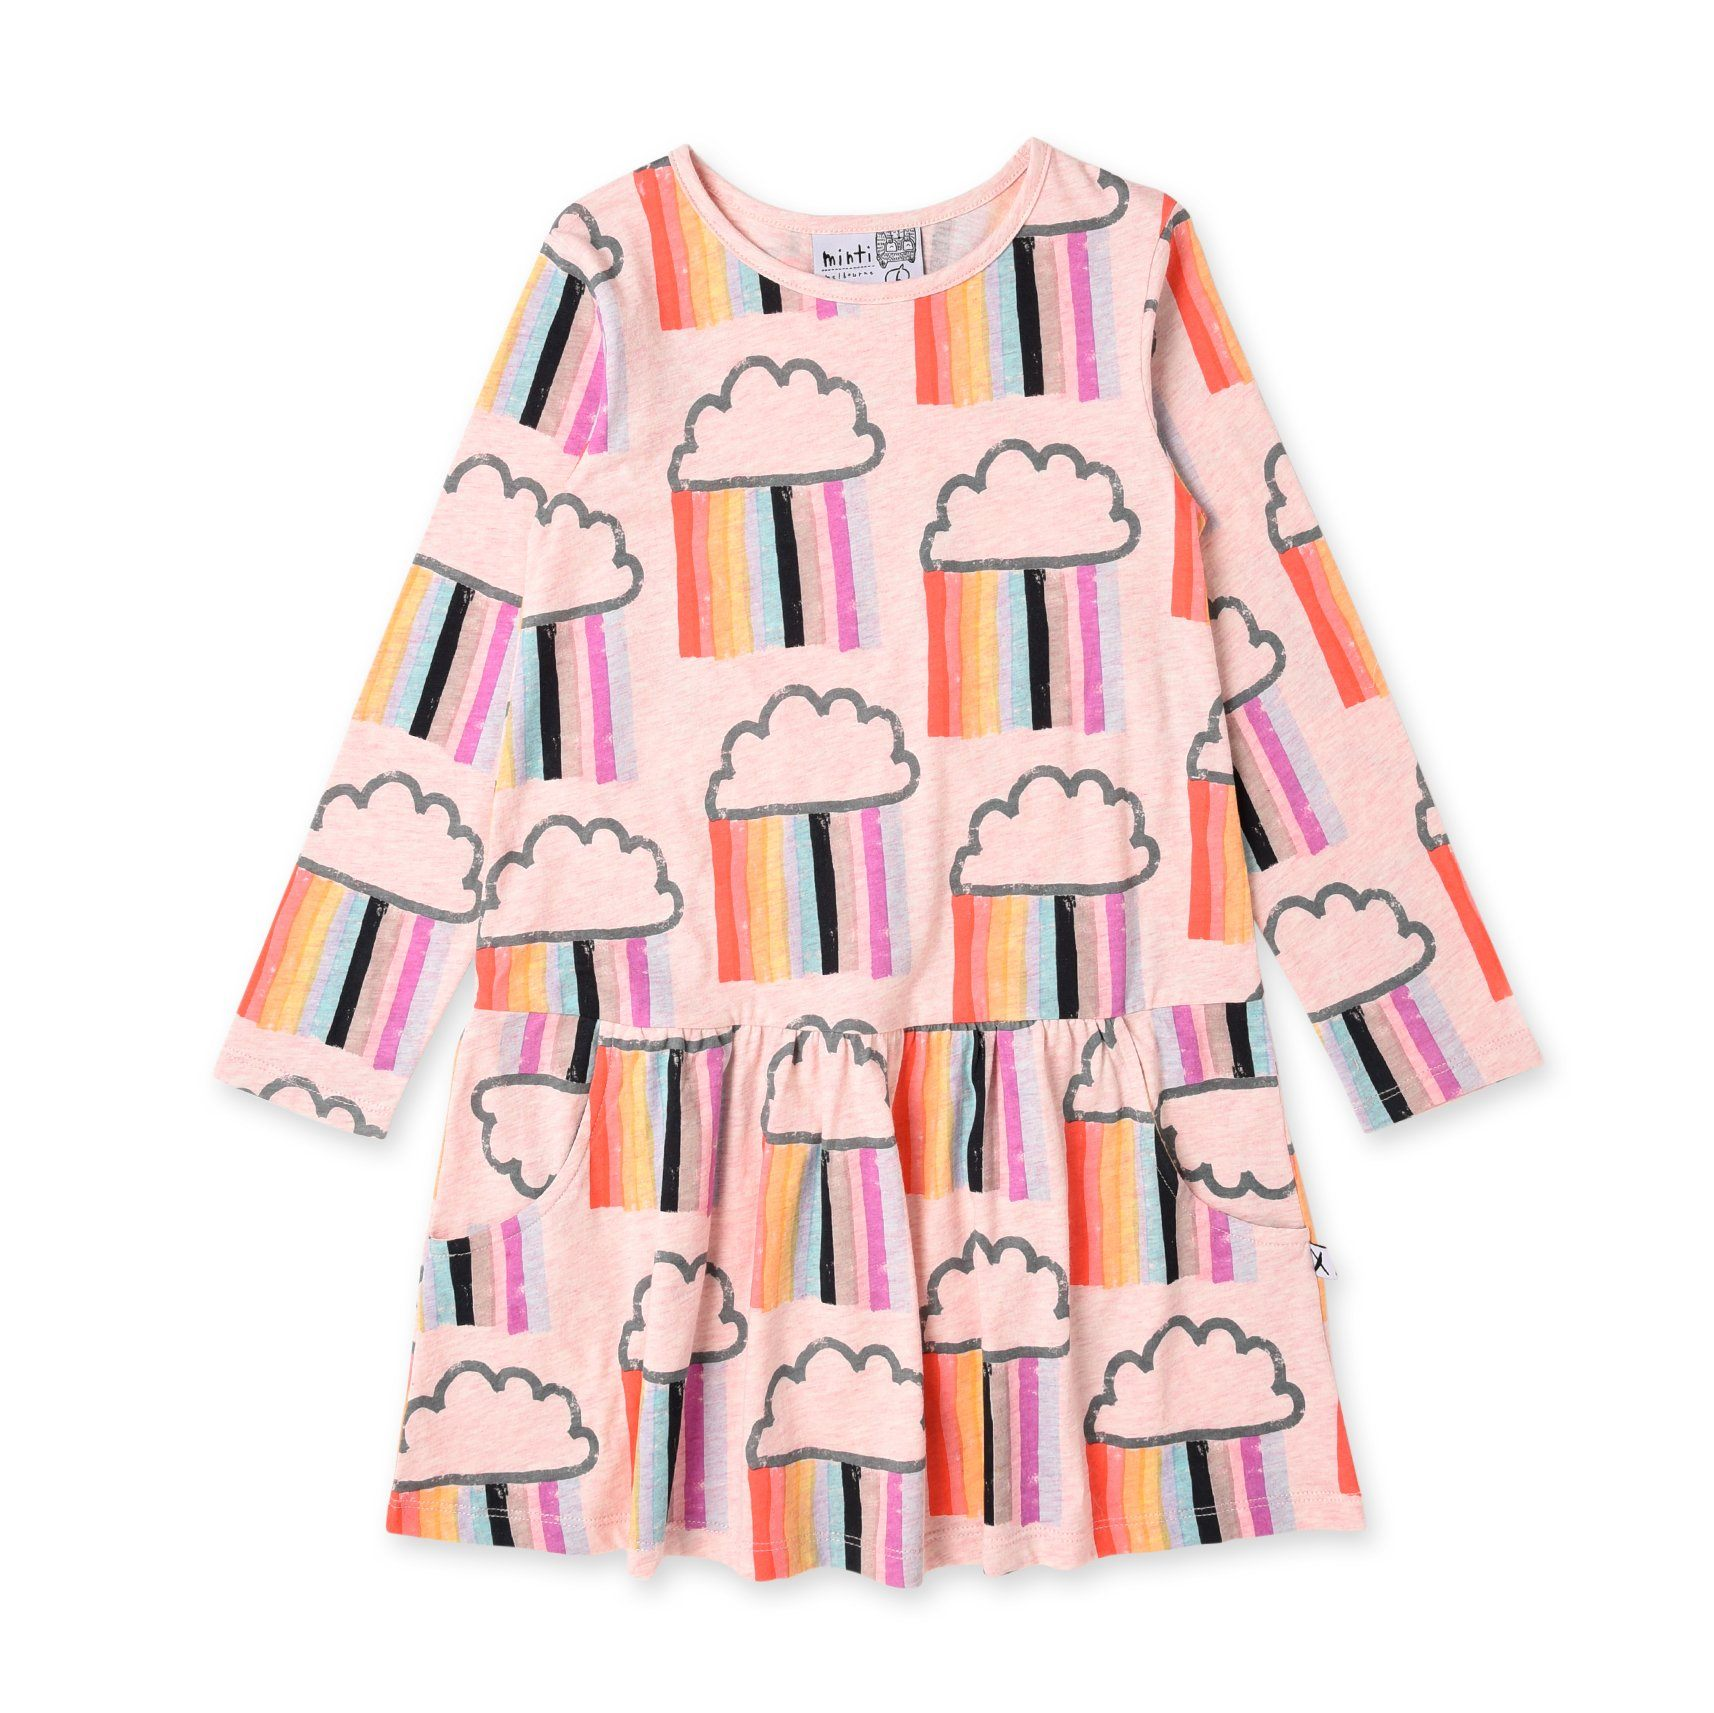 Raining Rainbows Dress